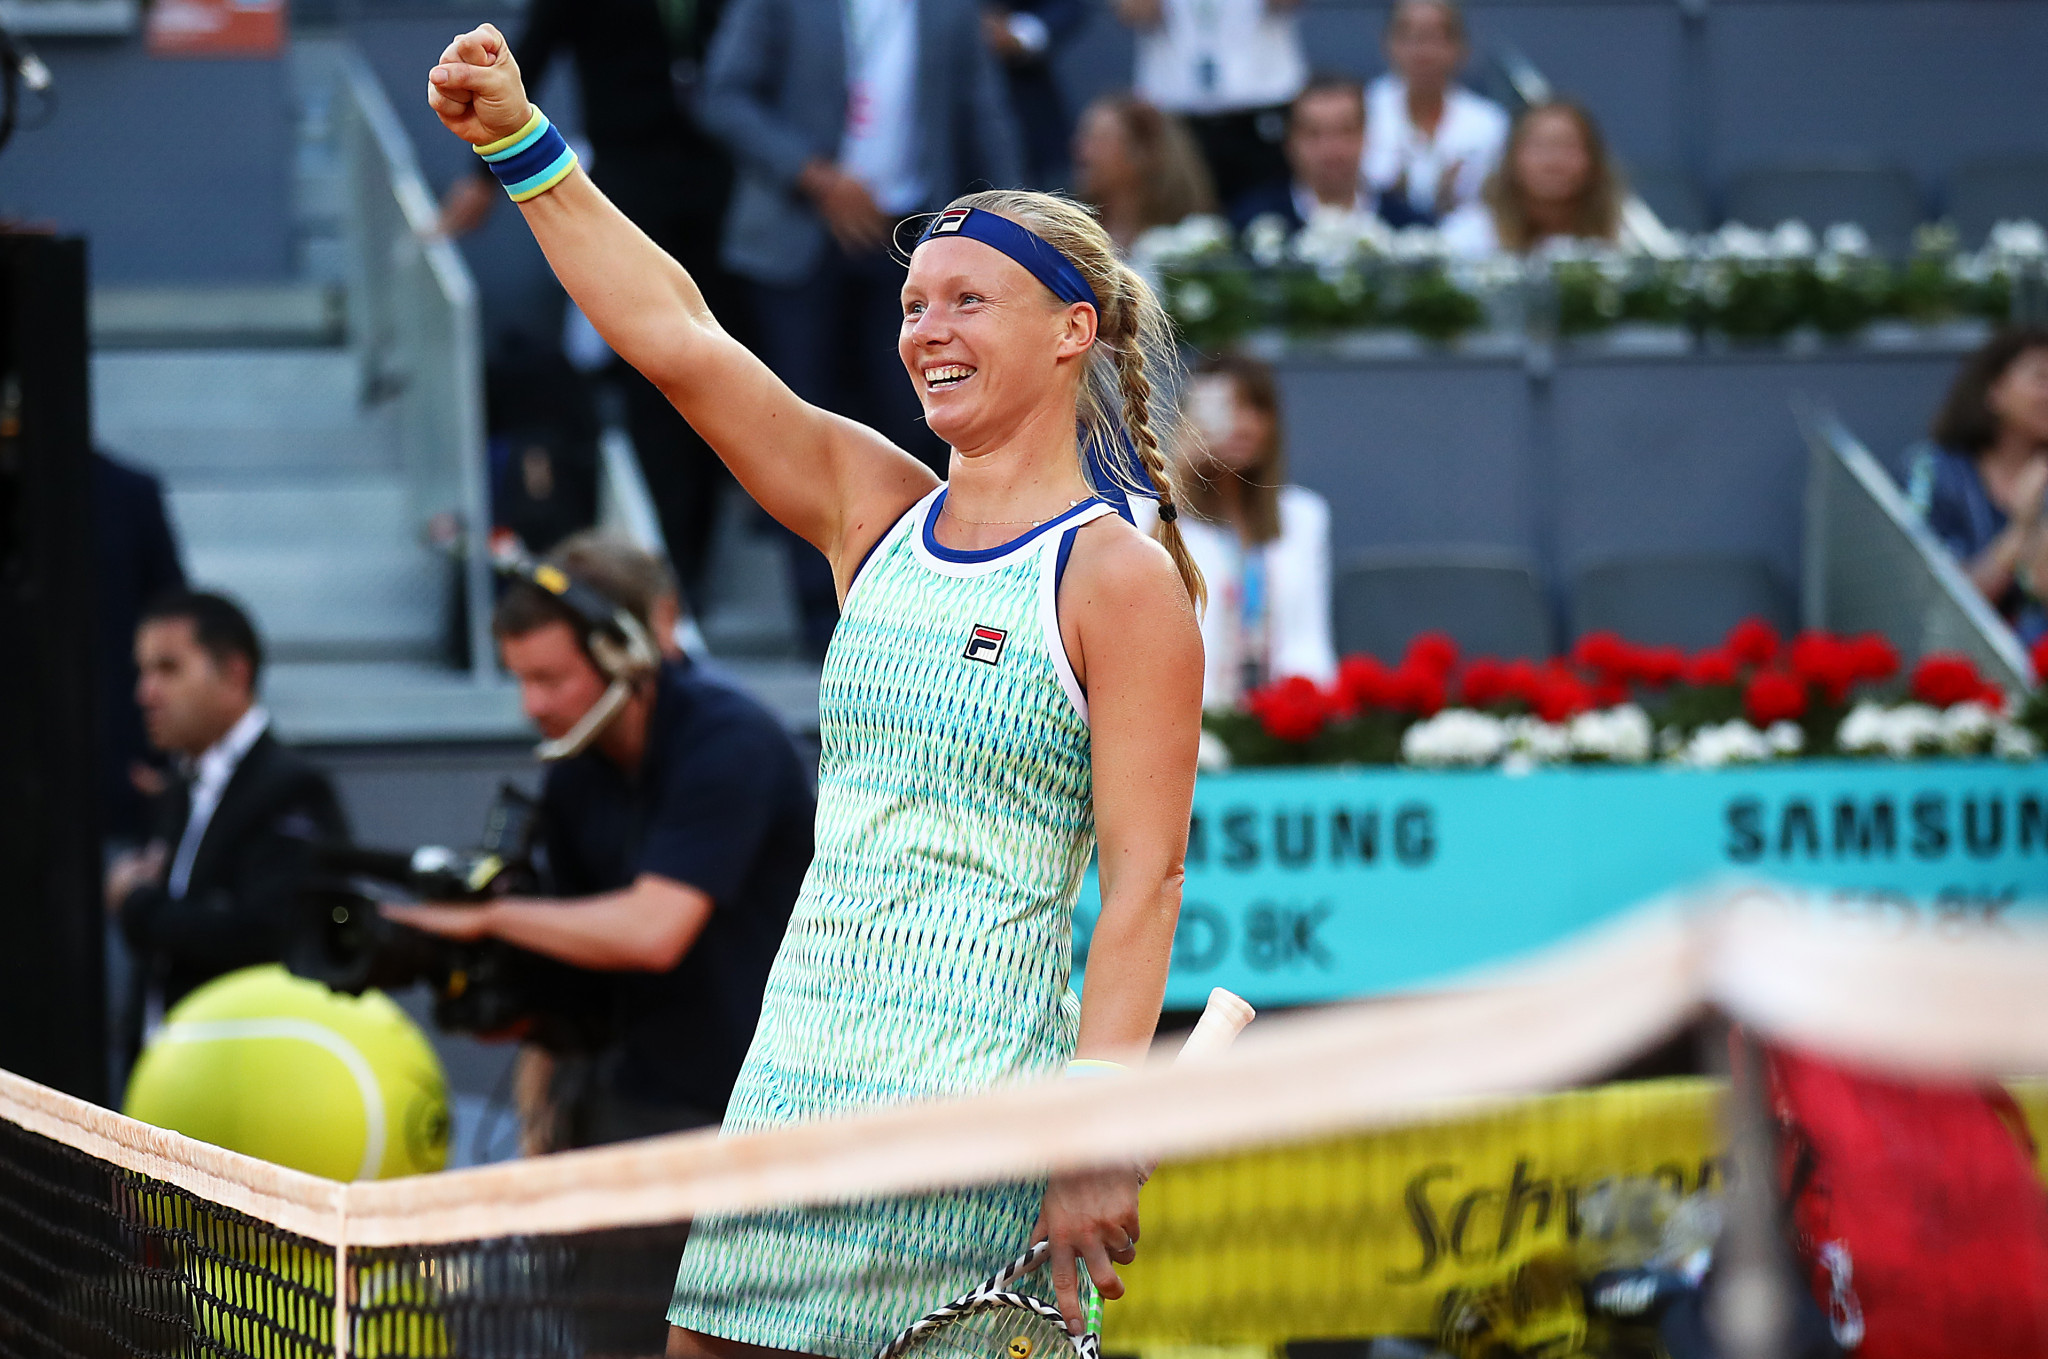 Bertens defeats Halep to take Madrid Open title